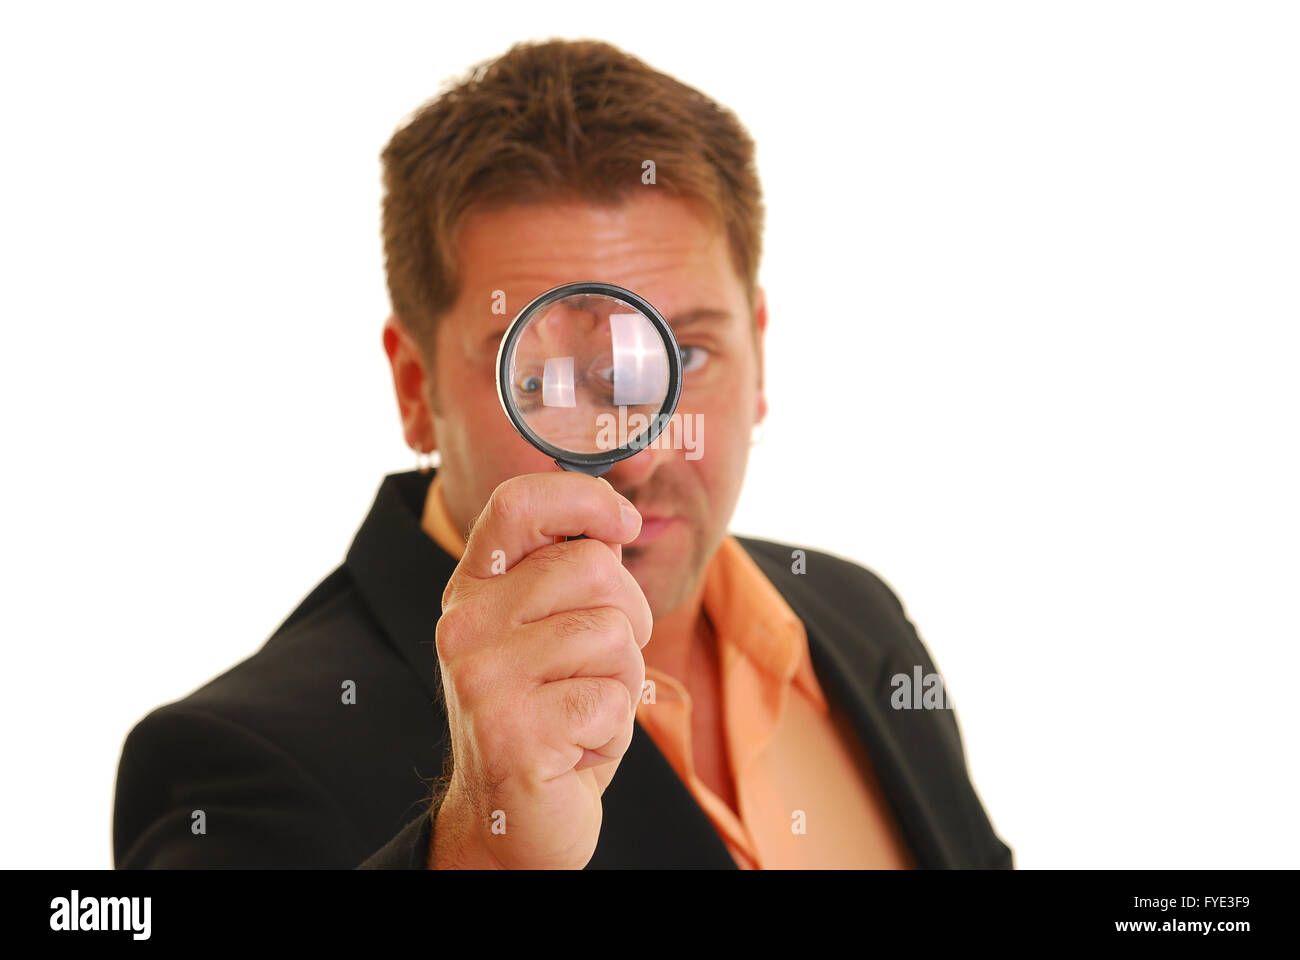 Bussiness man holding a magnifying glass - Stock Image